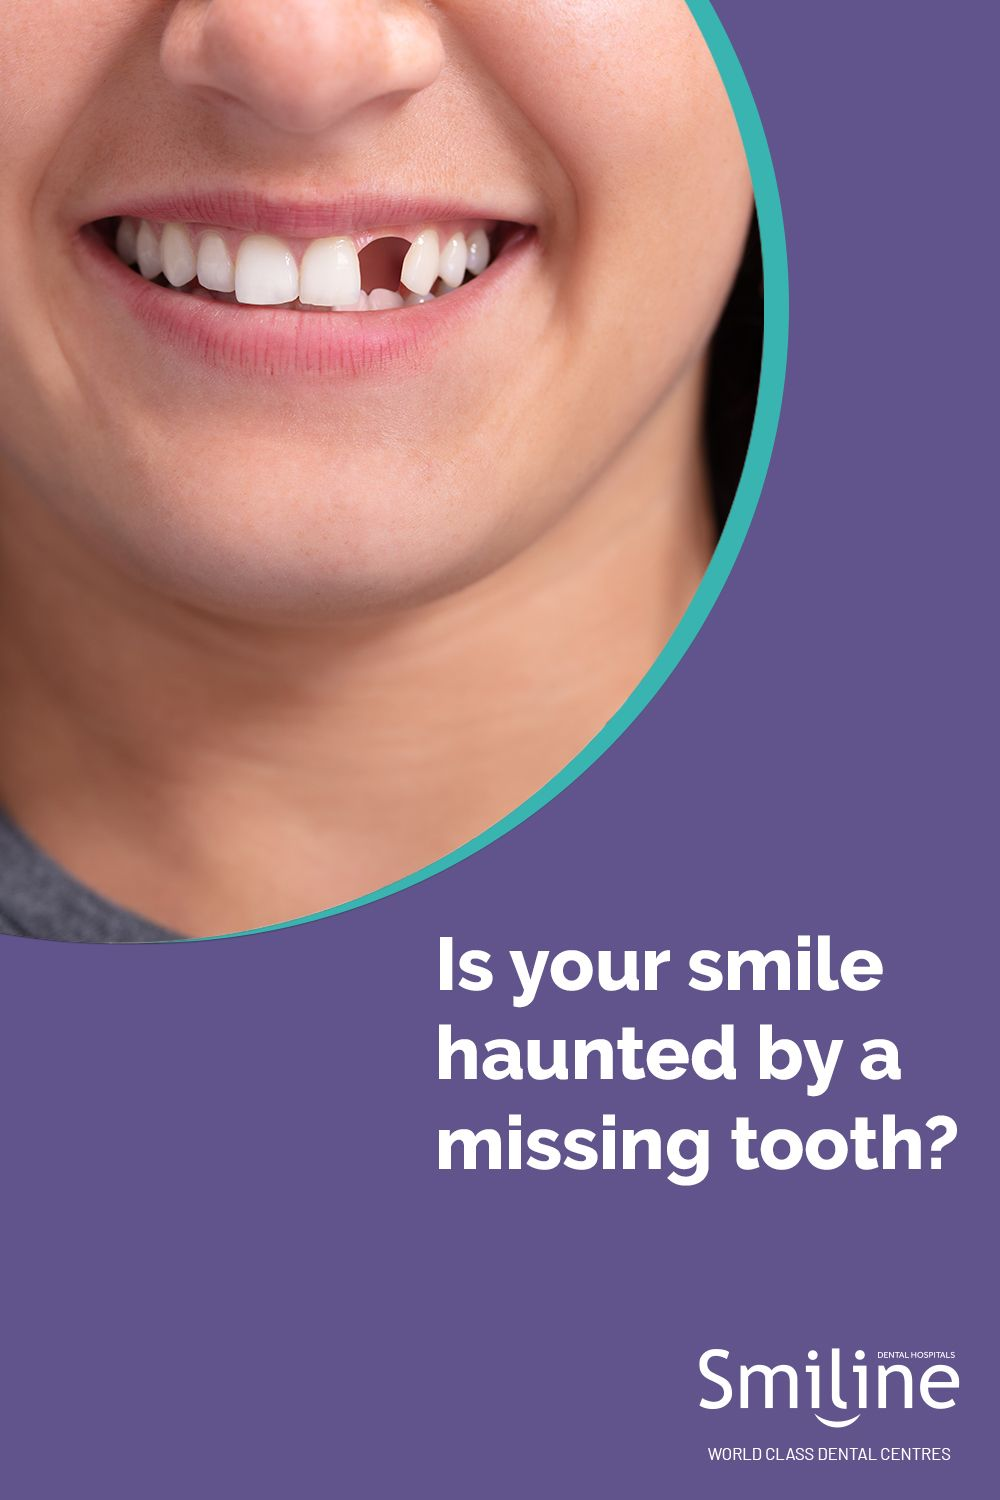 We at Smiline, provide the best of services for dental